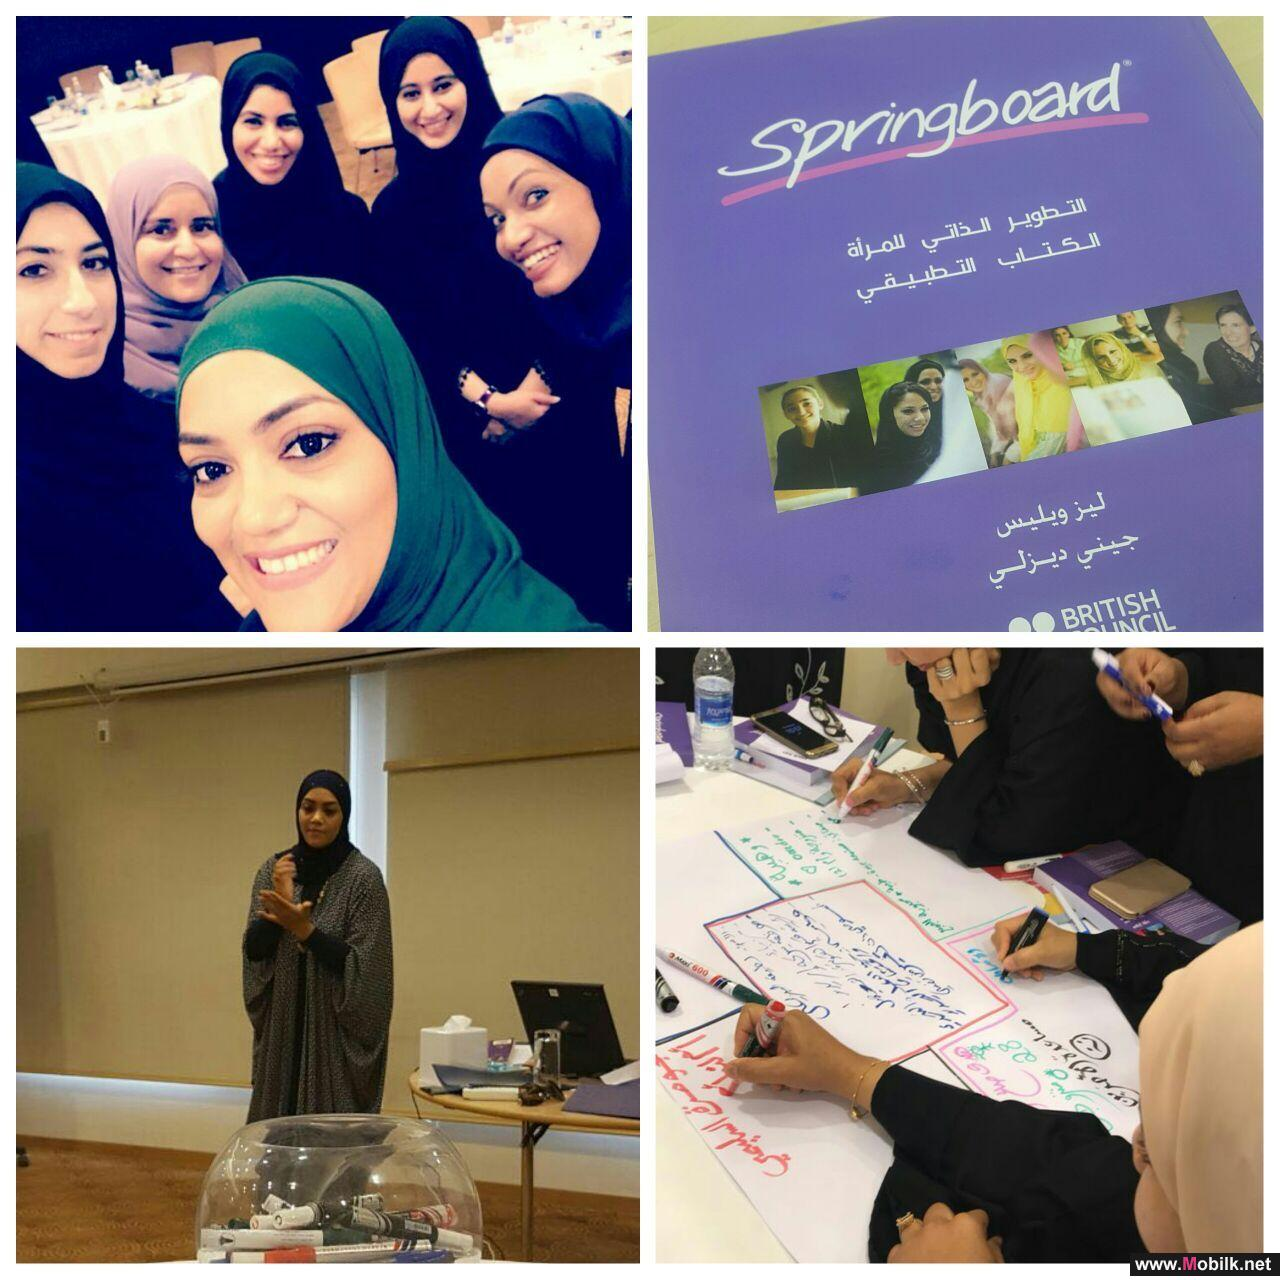 Ooredoo Kicks of Wave 7 of the Springboard Program with Over 200 Women Enrolled